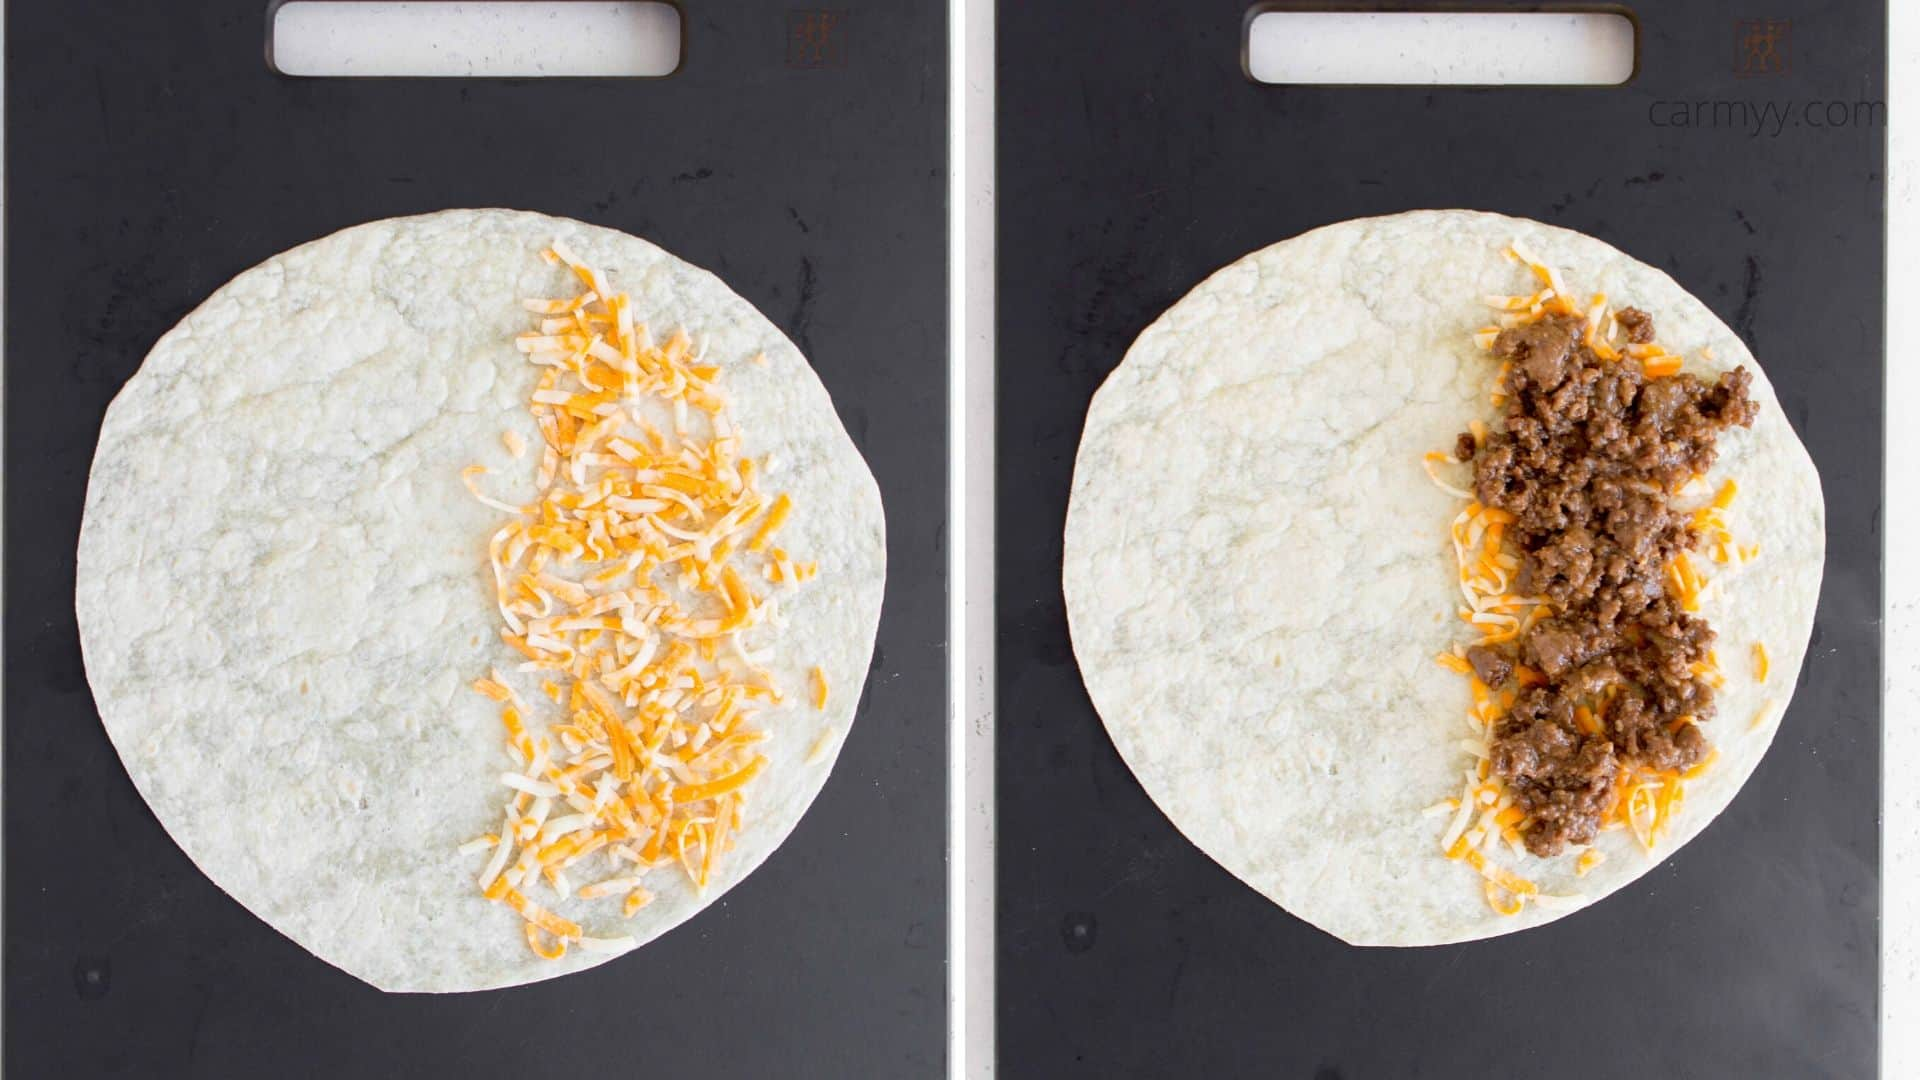 putting the quesadilla filling in the tortillas